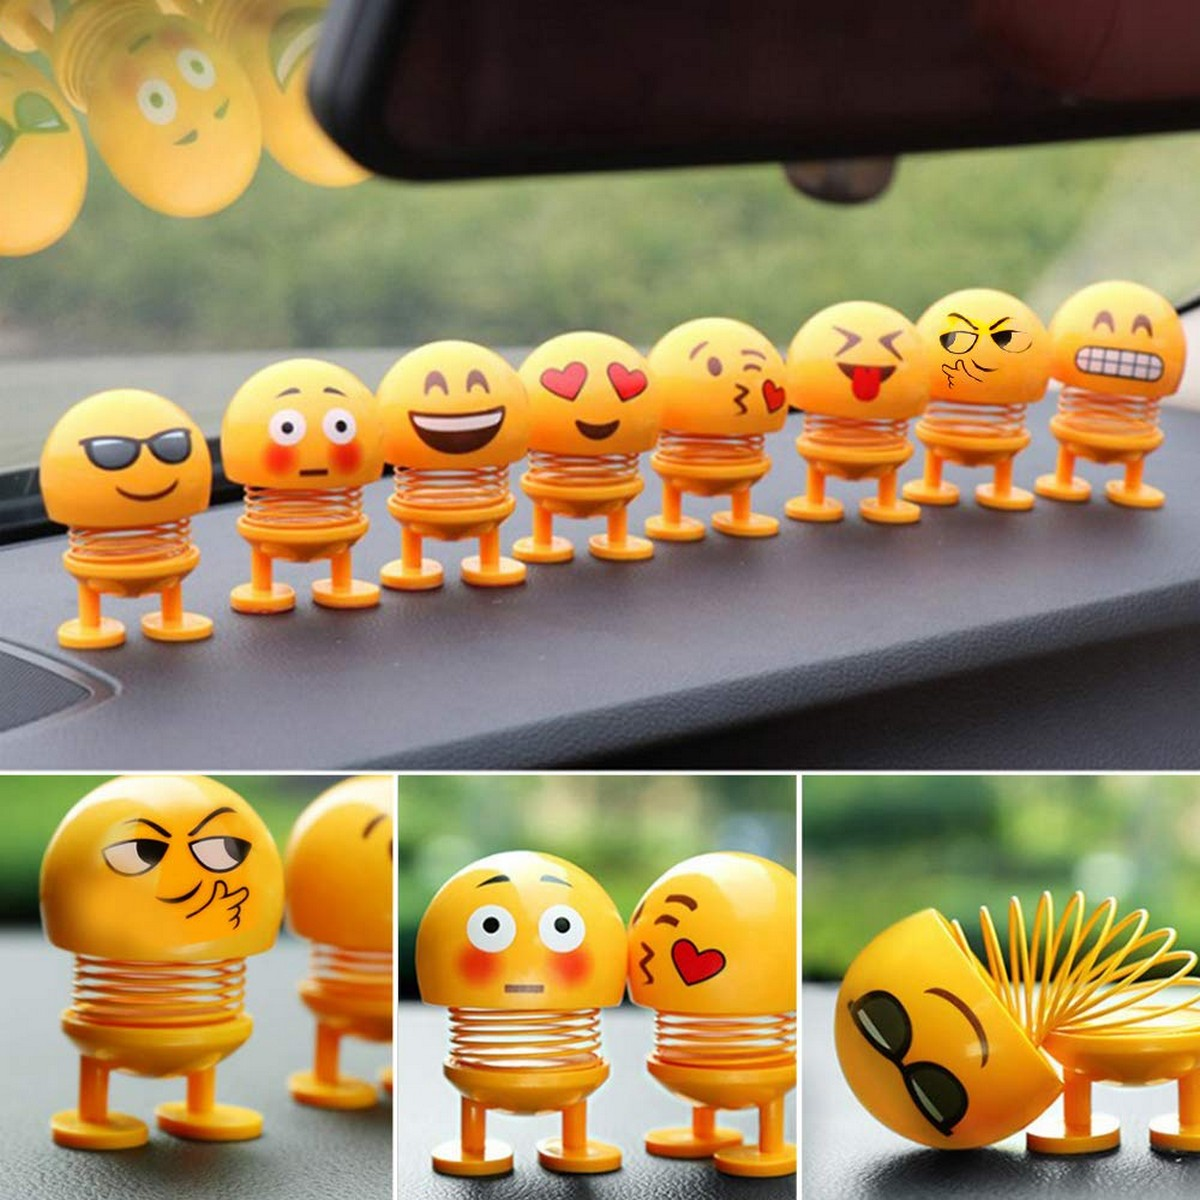 Pack of 5 Large Spring Shaking Head Dolls, Cute Emoji Dolls Funny Expression Bounce Toy Swing Jewelry Smiley Face for Car Dashboard